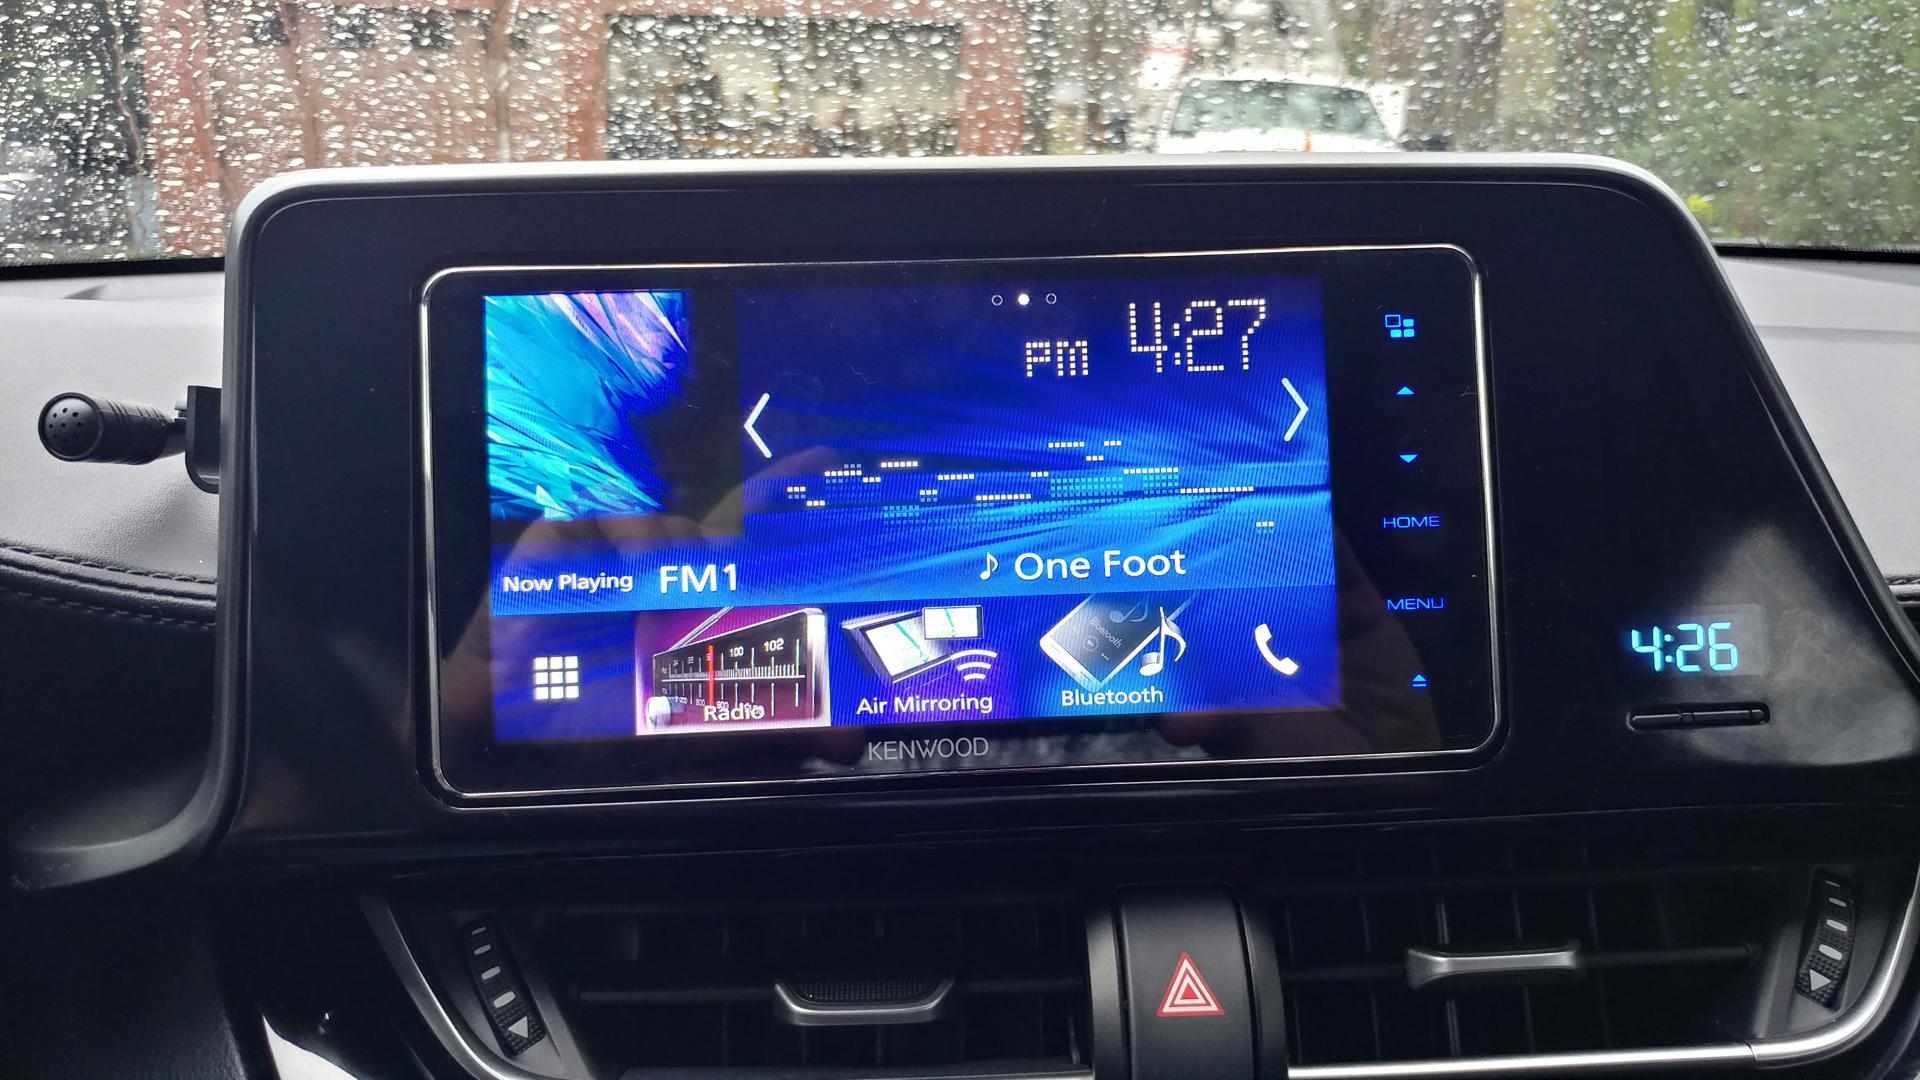 Getting Rid of that crappy factory Infotainment system - Toyota C-HR